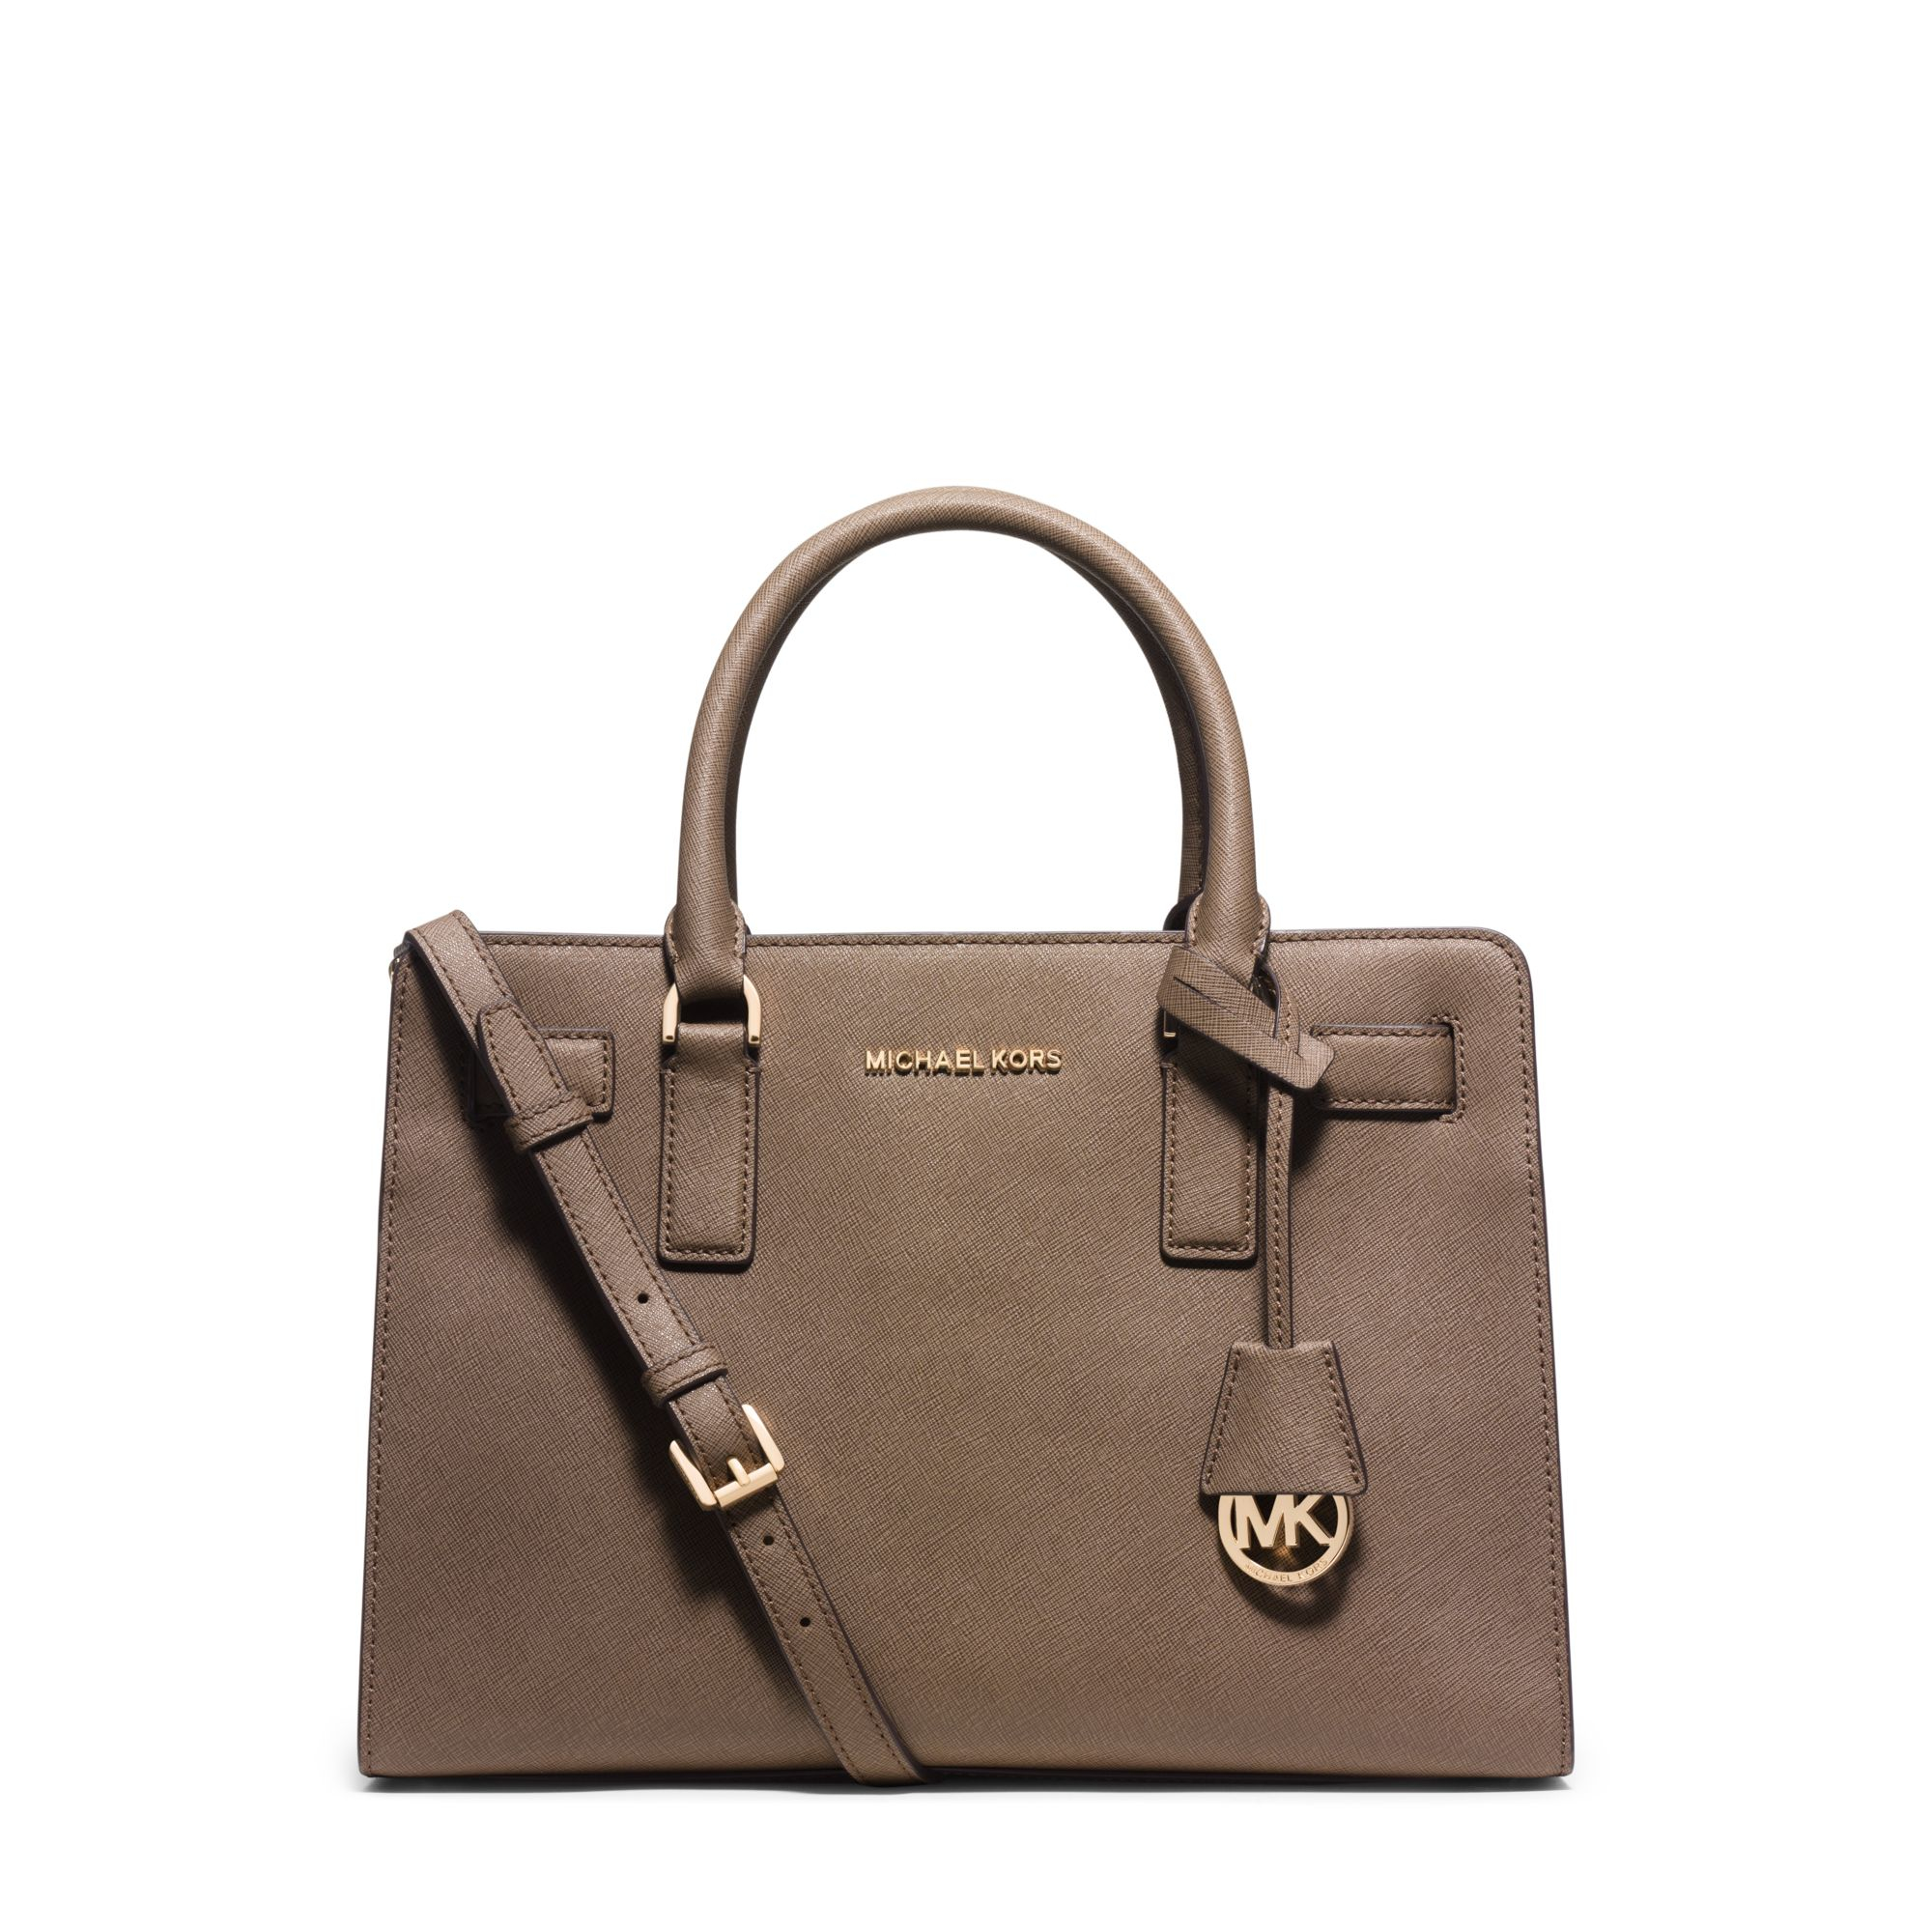 7b22cf514f71 Lyst - Michael Kors Dillon Saffiano Leather Satchel in Brown